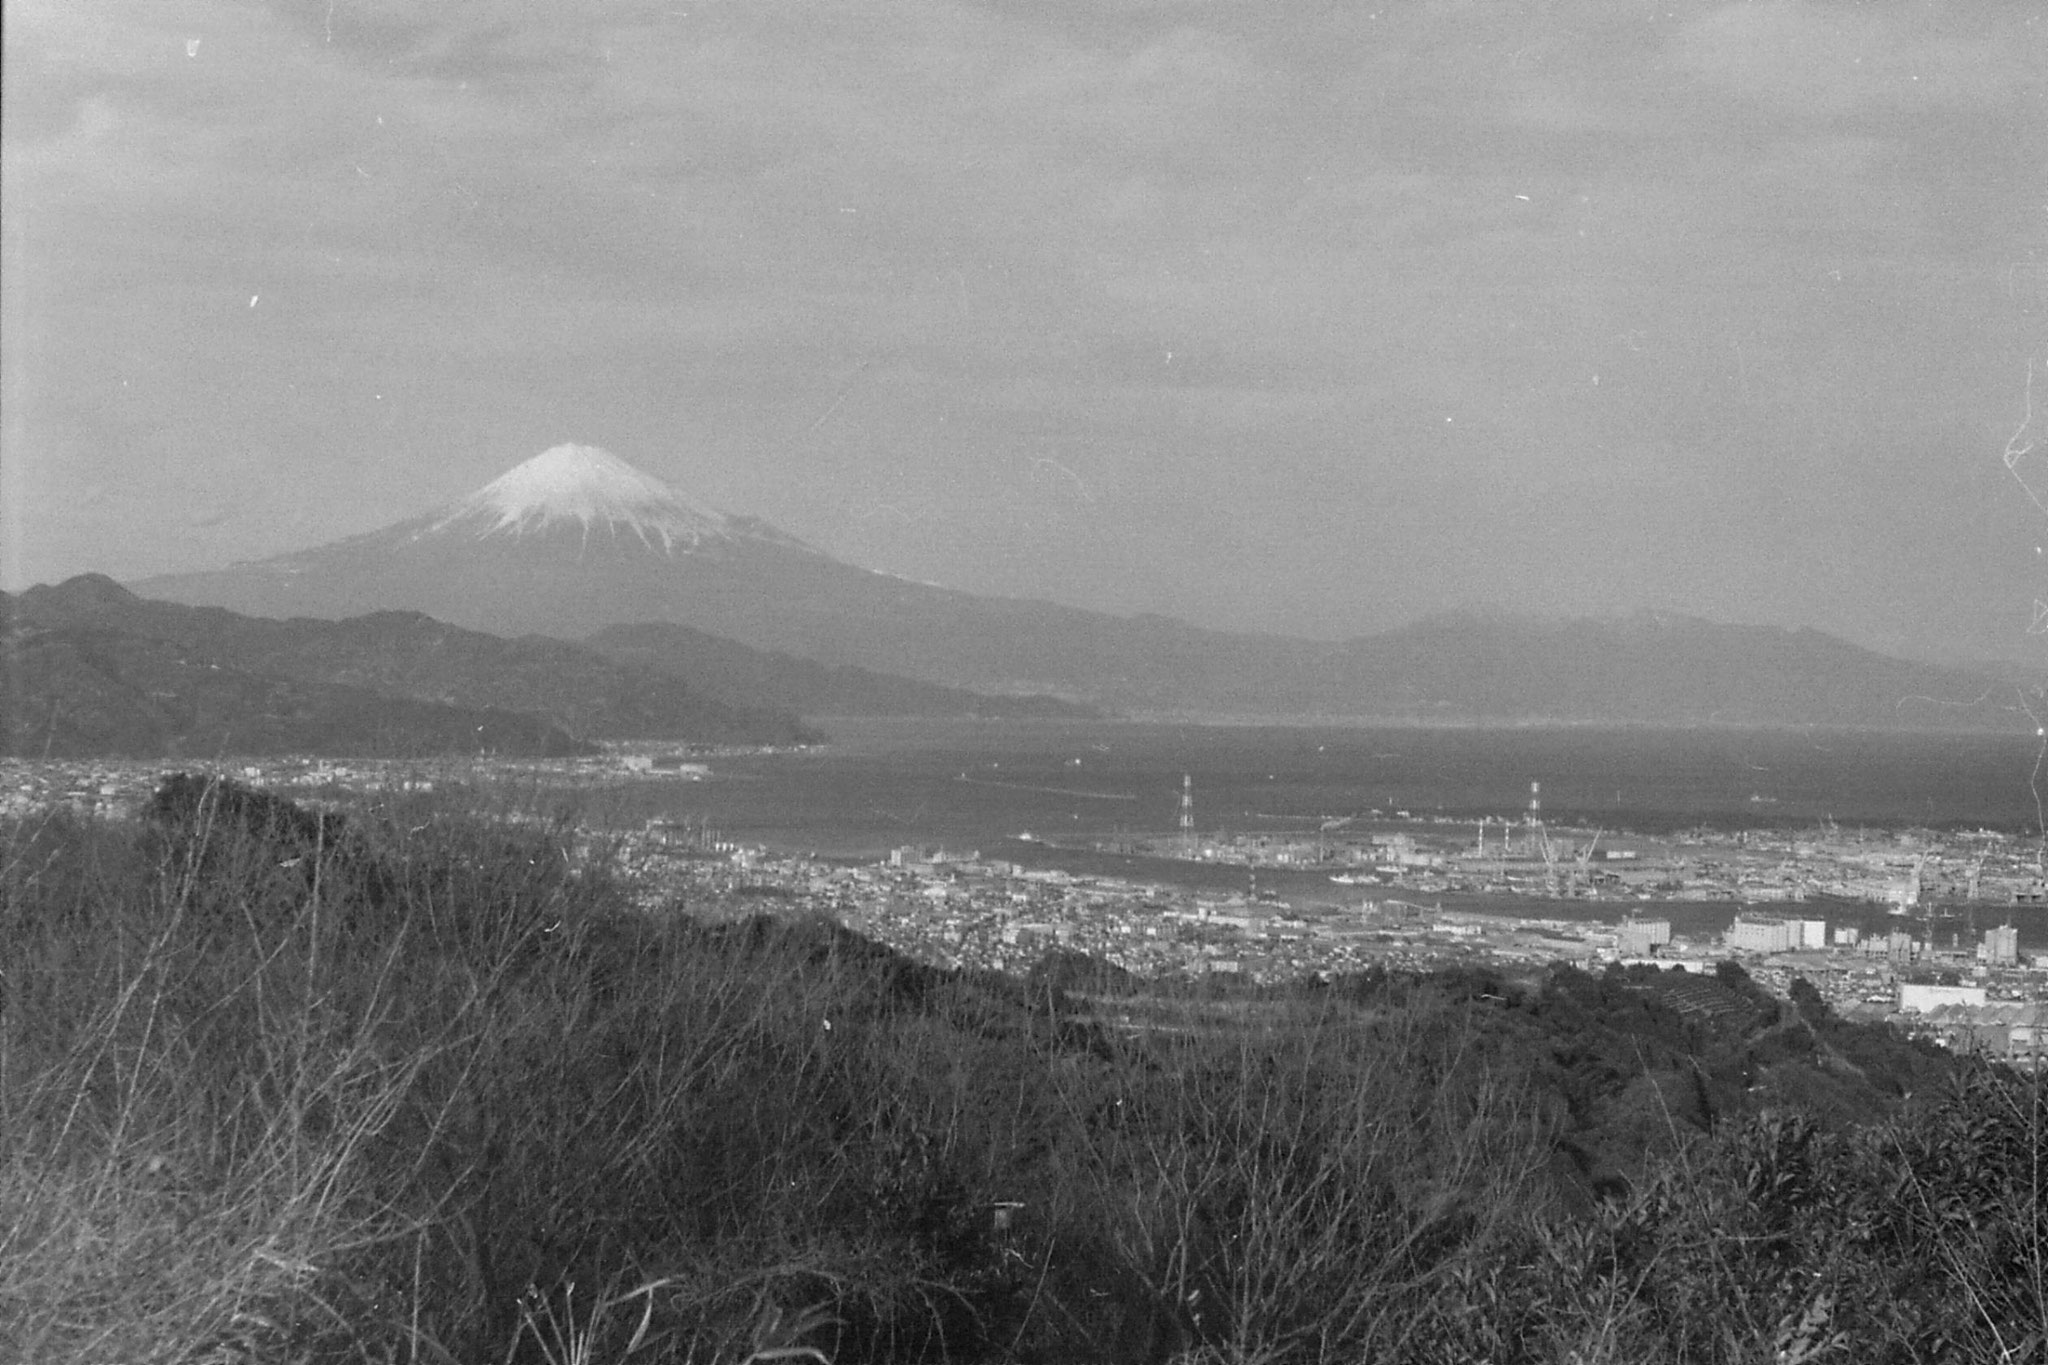 27/1/1989: 16:View of Fuji from Nihon Dara